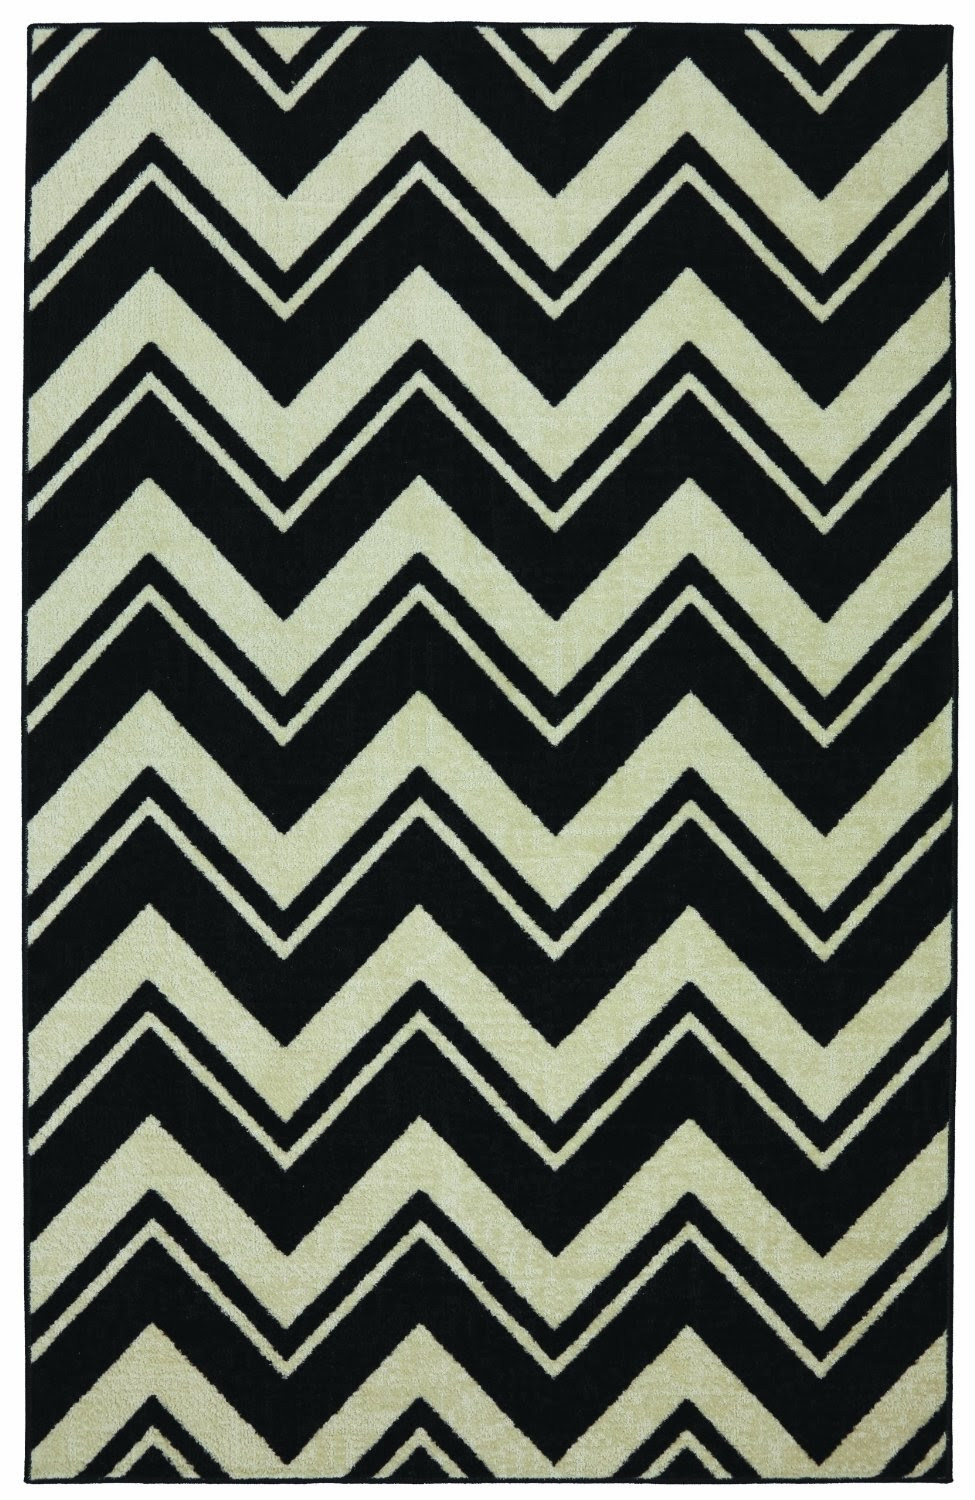 mesmerizing rug maples rugs with black zig zag stripe border ideas